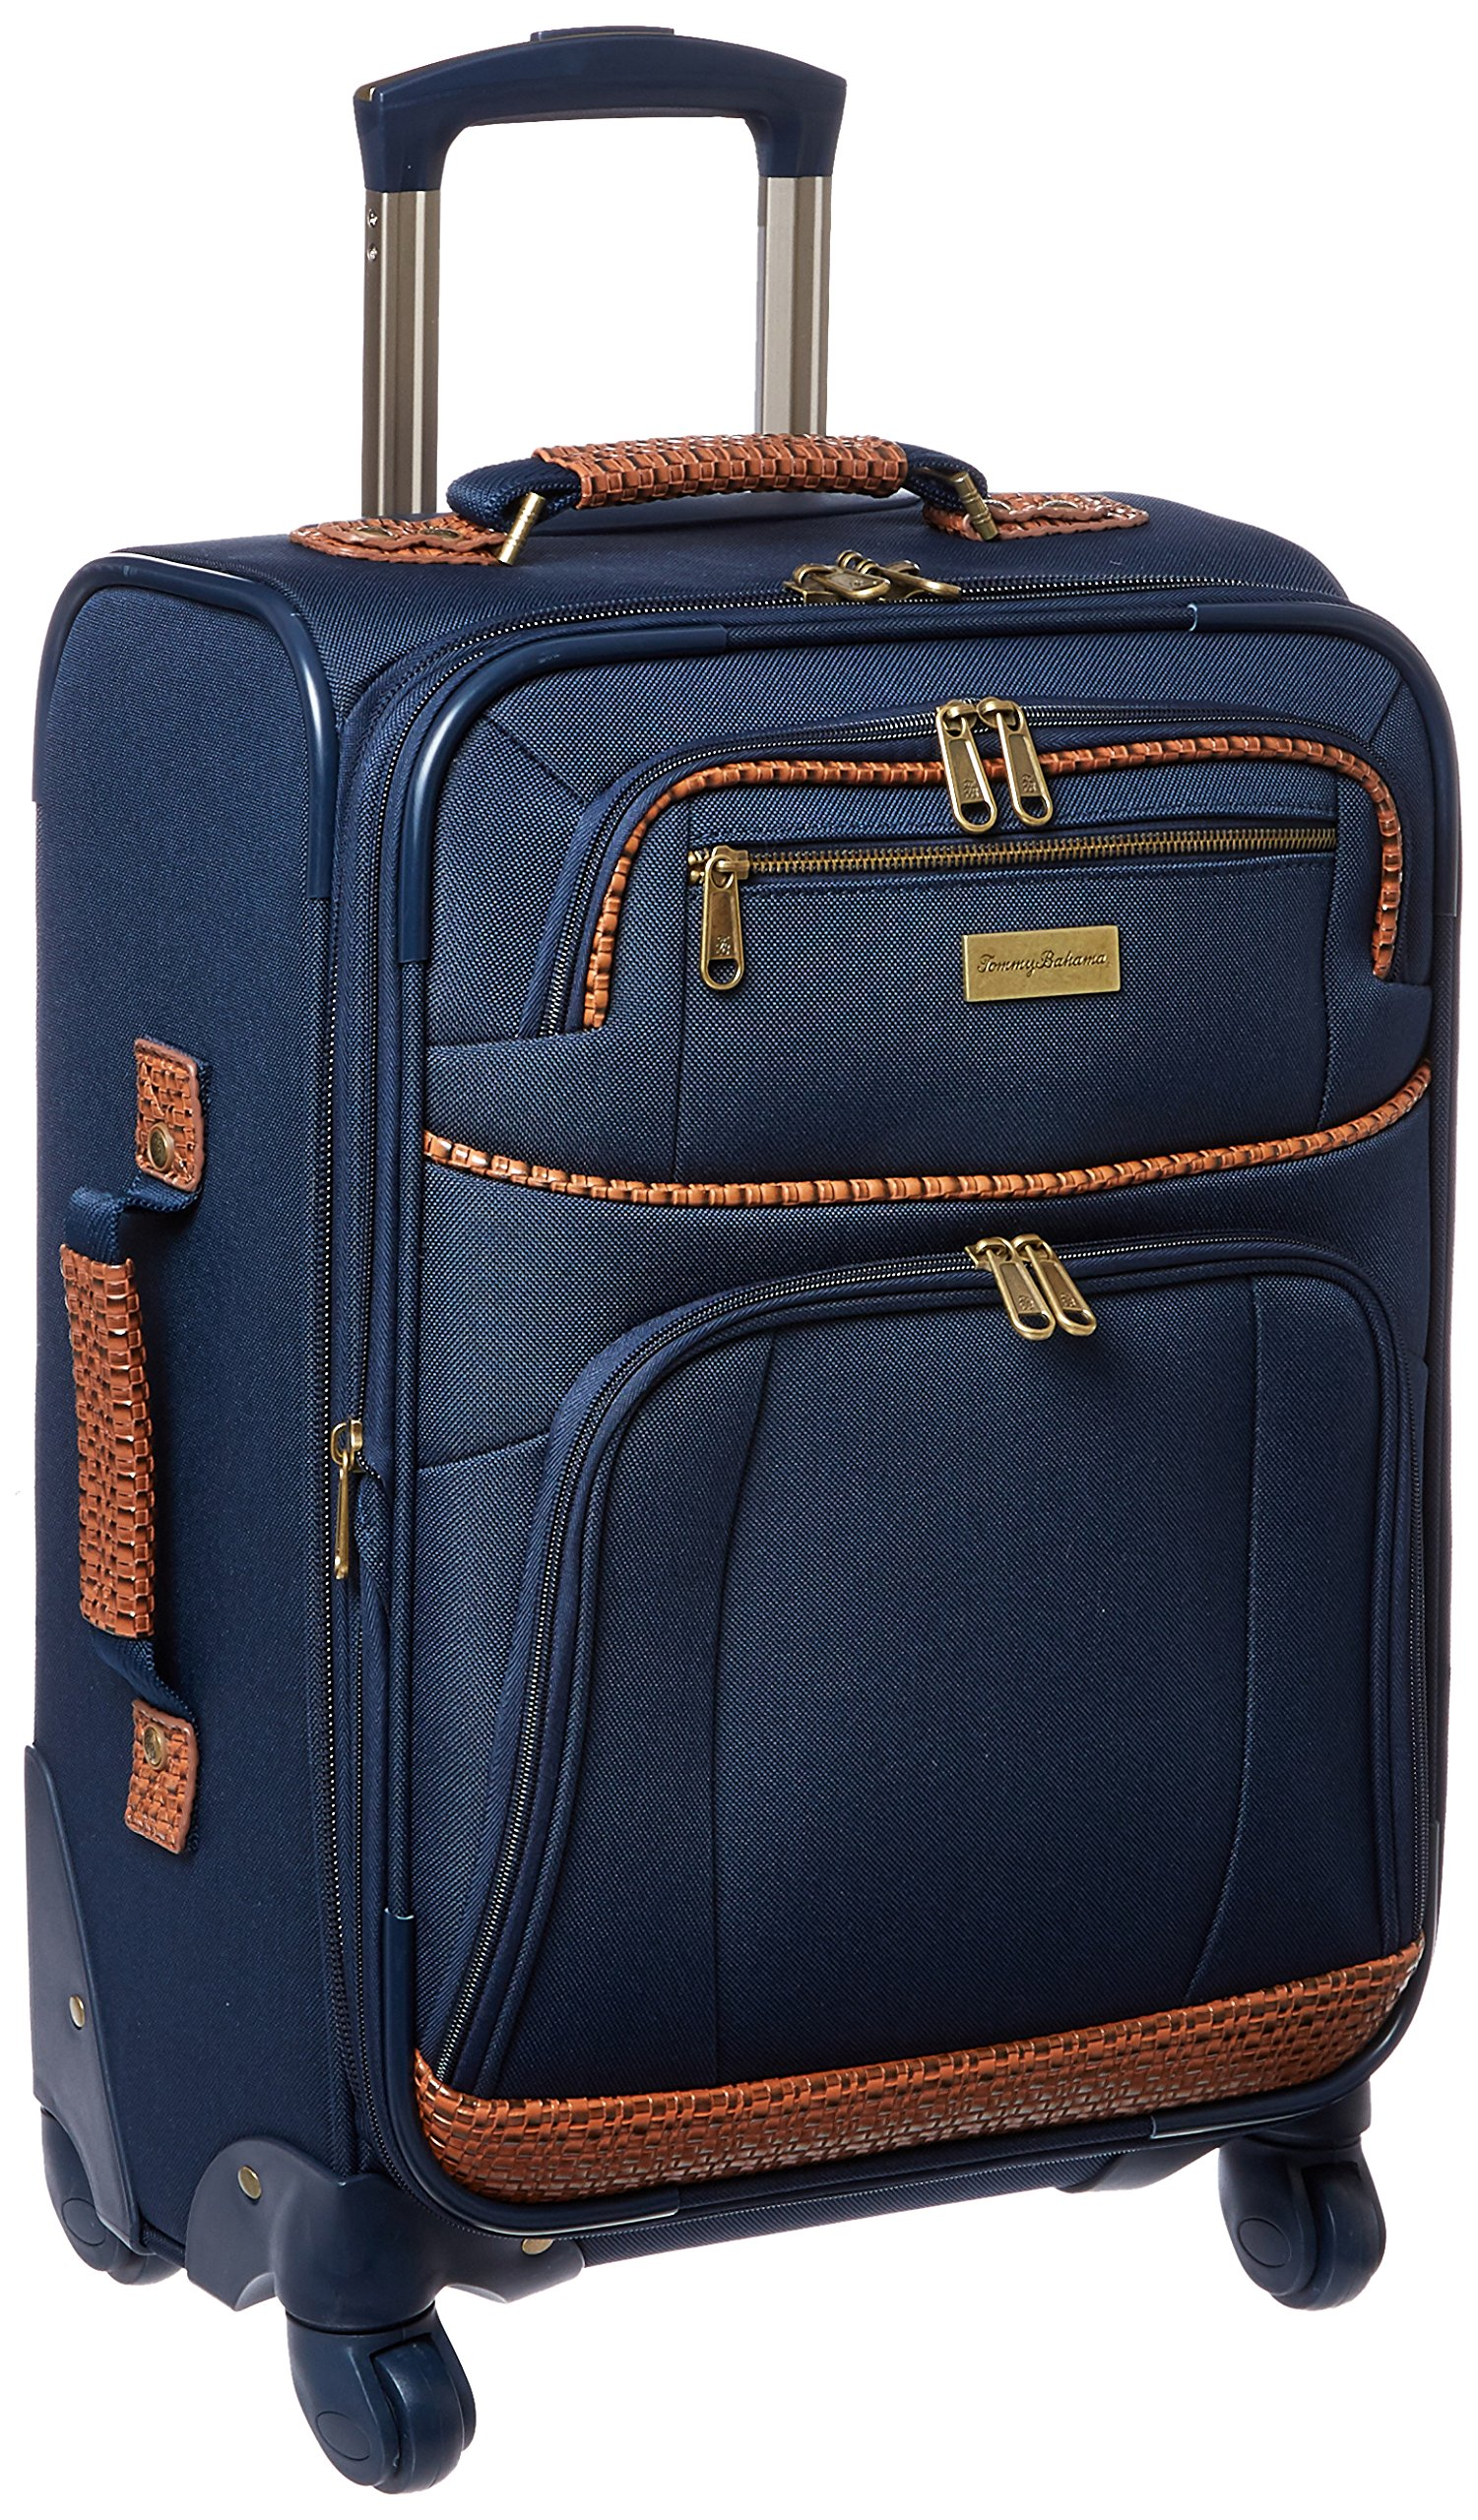 Tommy Bahama Softside Carry On Luggage with Leather Travel Kit Toiletry Bag, Navy